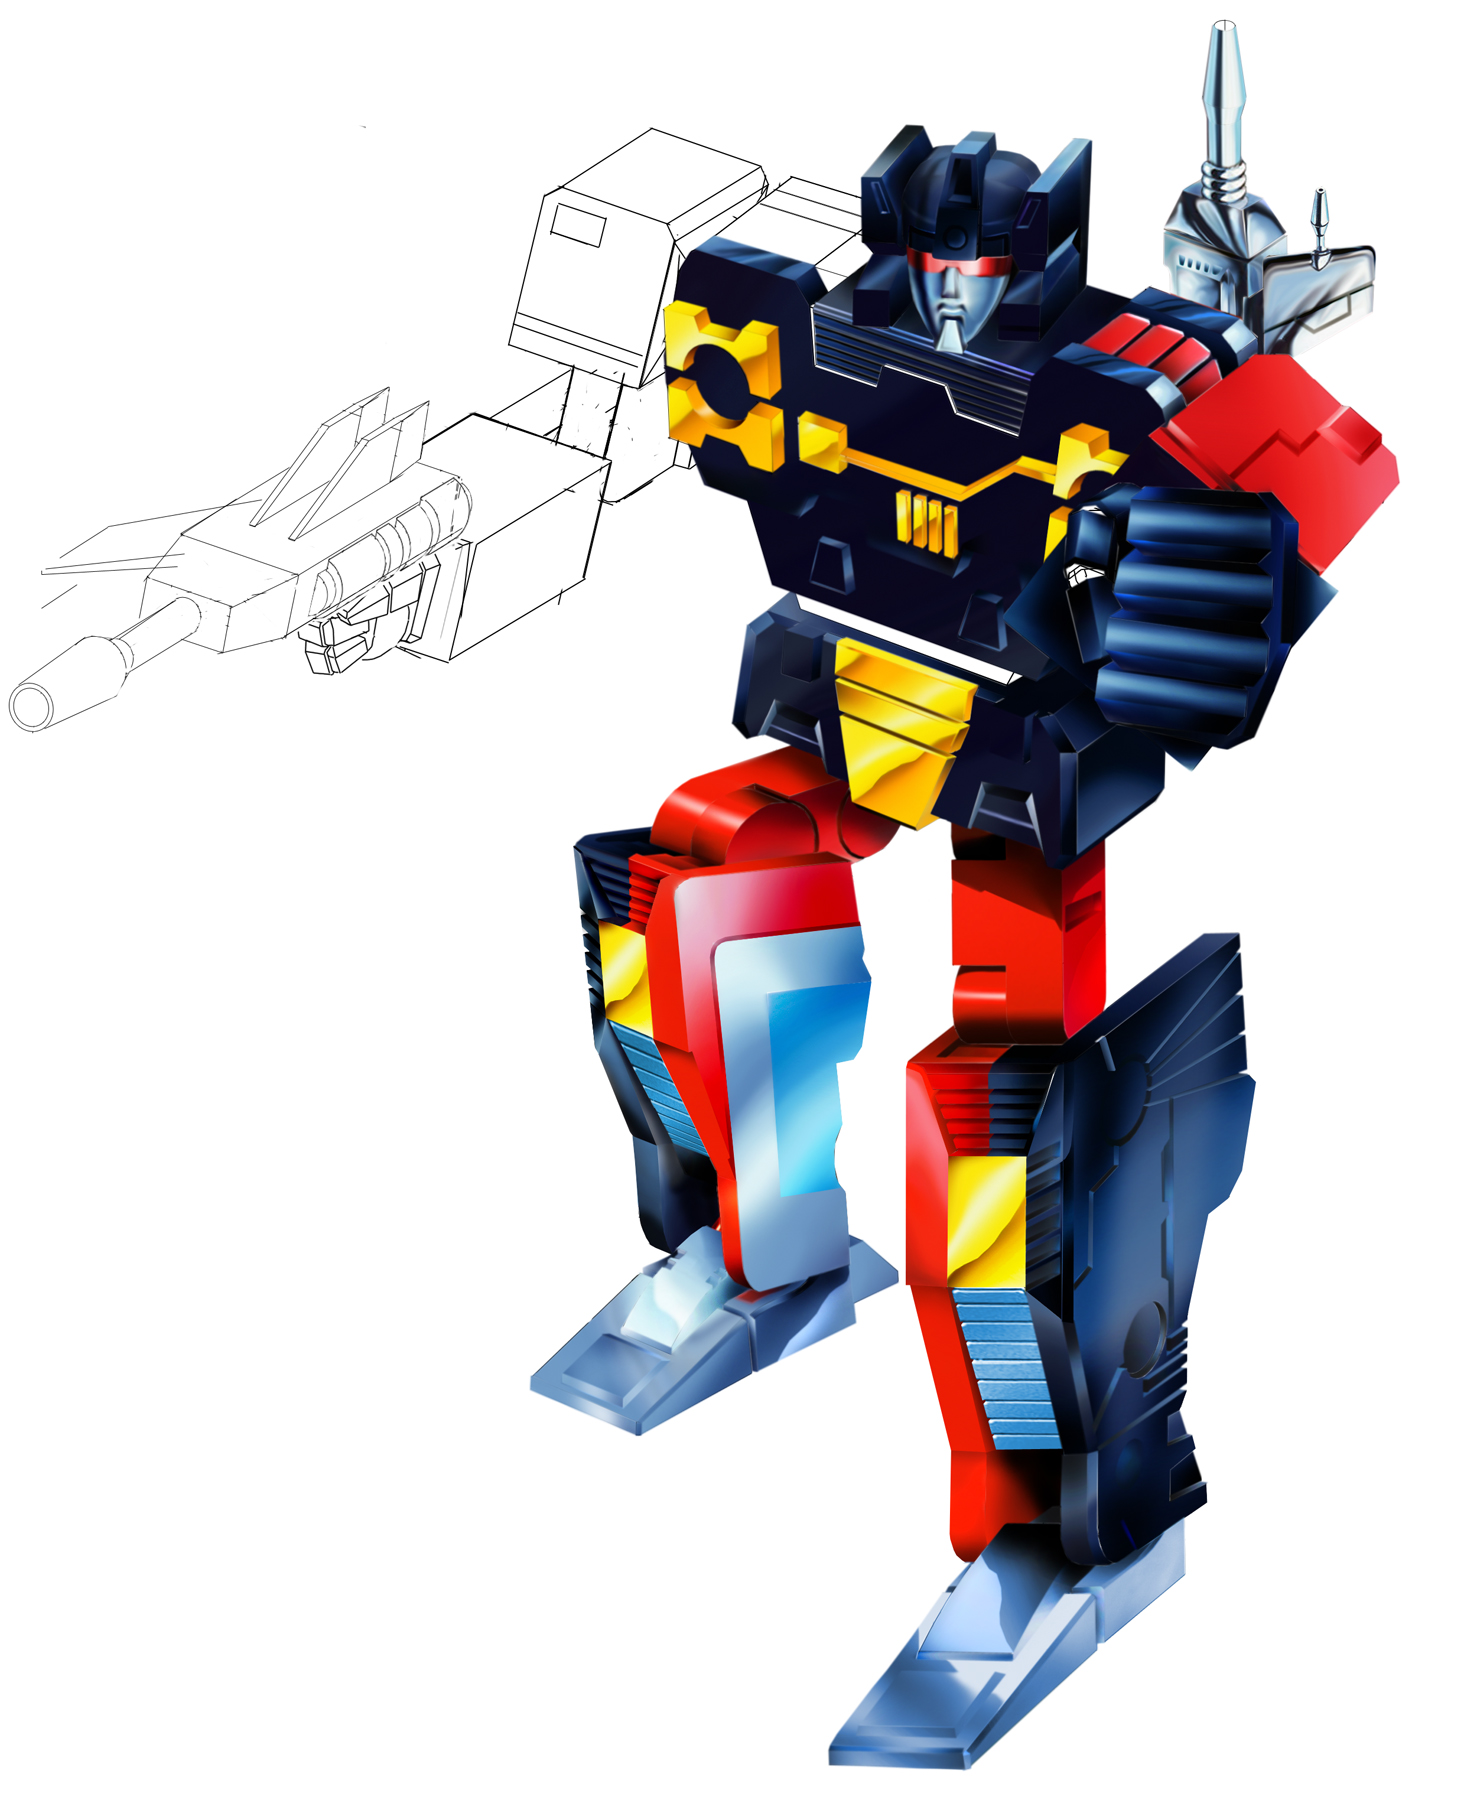 Masterpiece Soundwave Buzzsaw and Laserbeak-rumble-update2.jpg